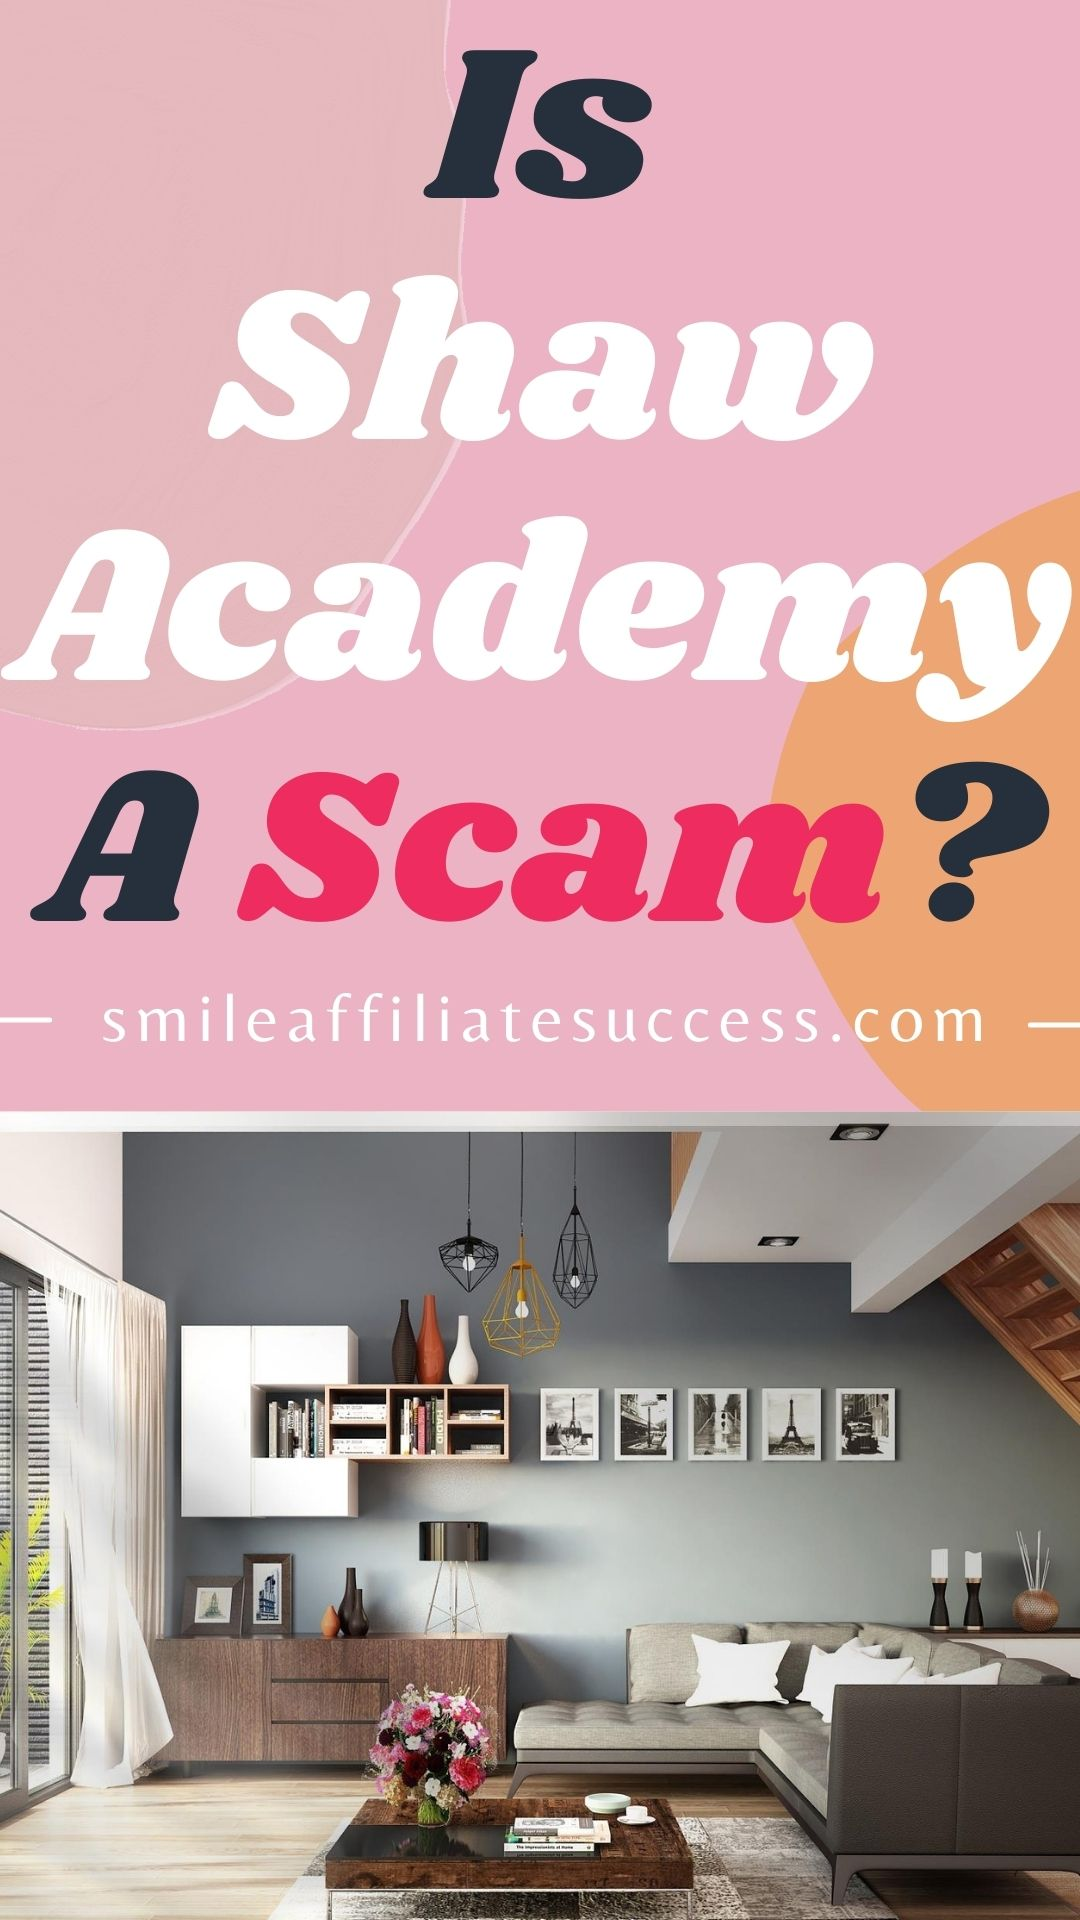 Is Shaw Academy A Scam?